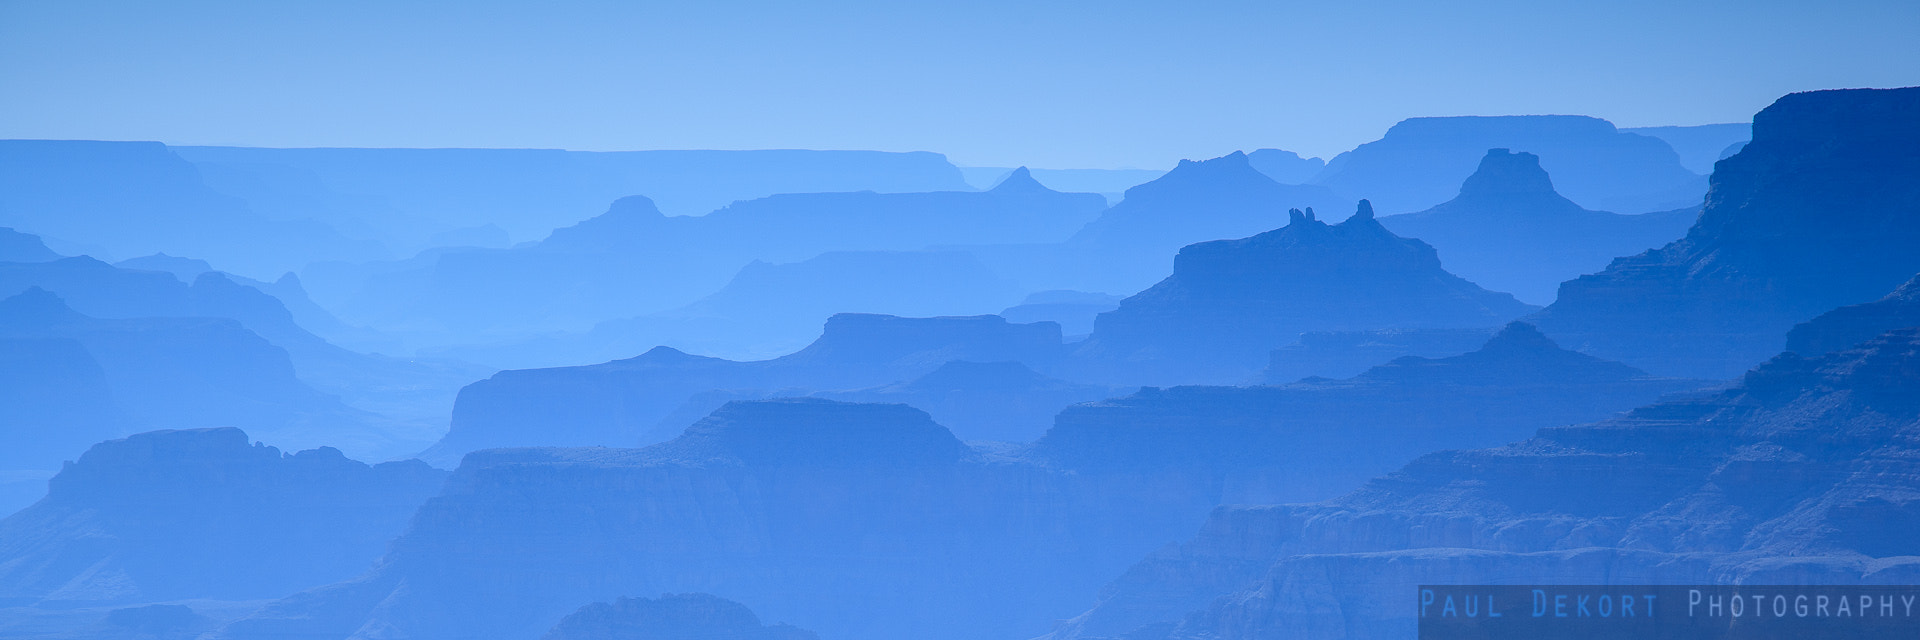 Photograph Abstract Layers by Paul Dekort on 500px